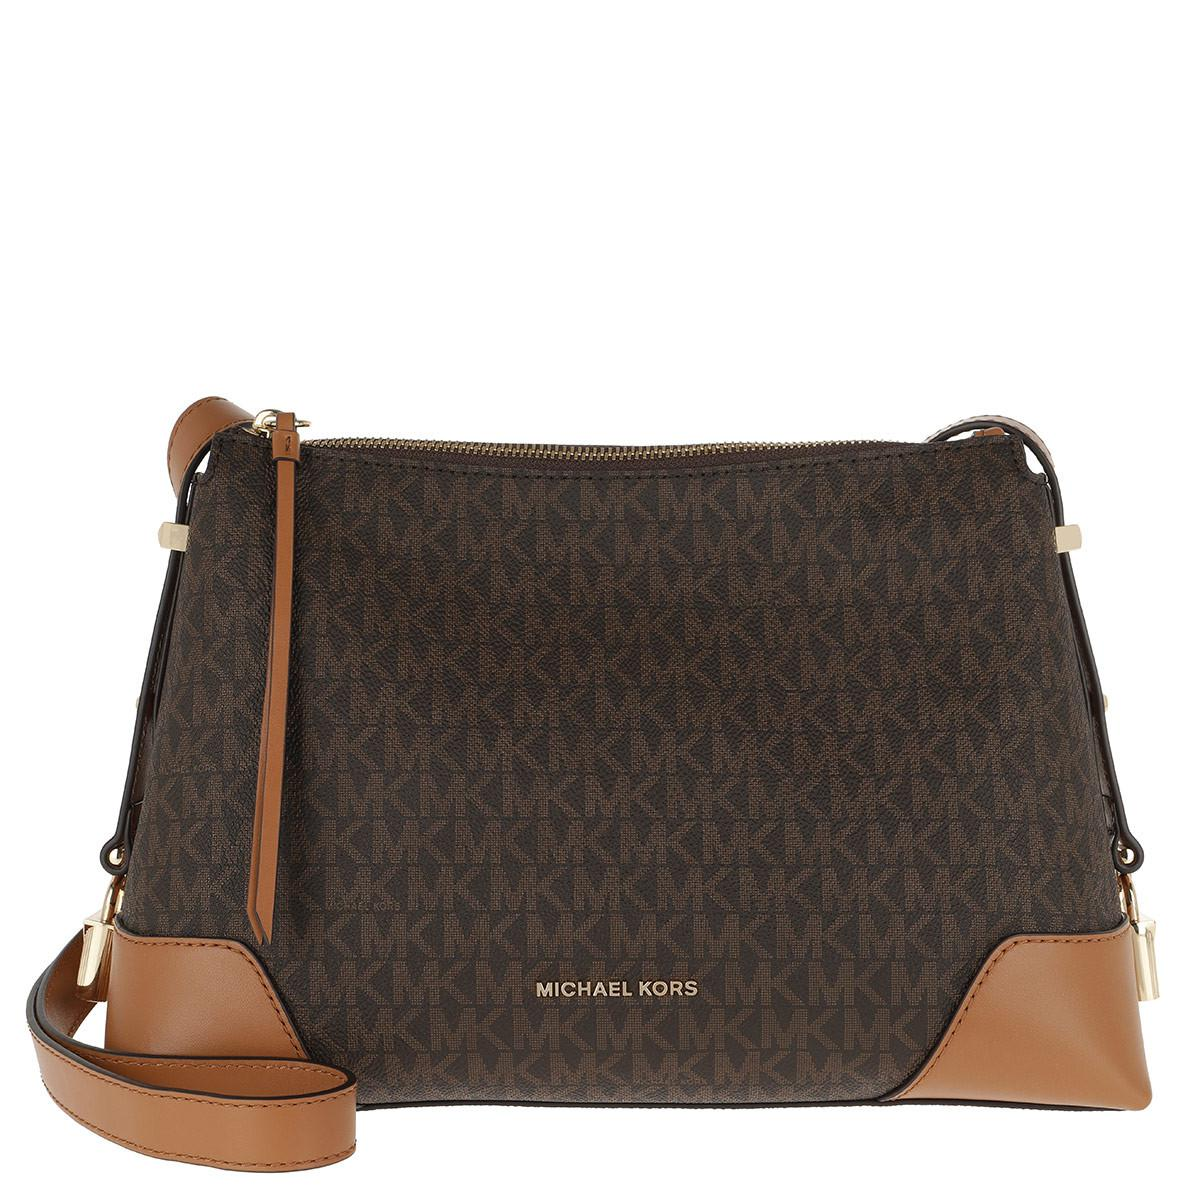 a96ae3e009c37d Michael Kors - Crosby Md Messenger Bag Brown/acorn - Lyst. View fullscreen